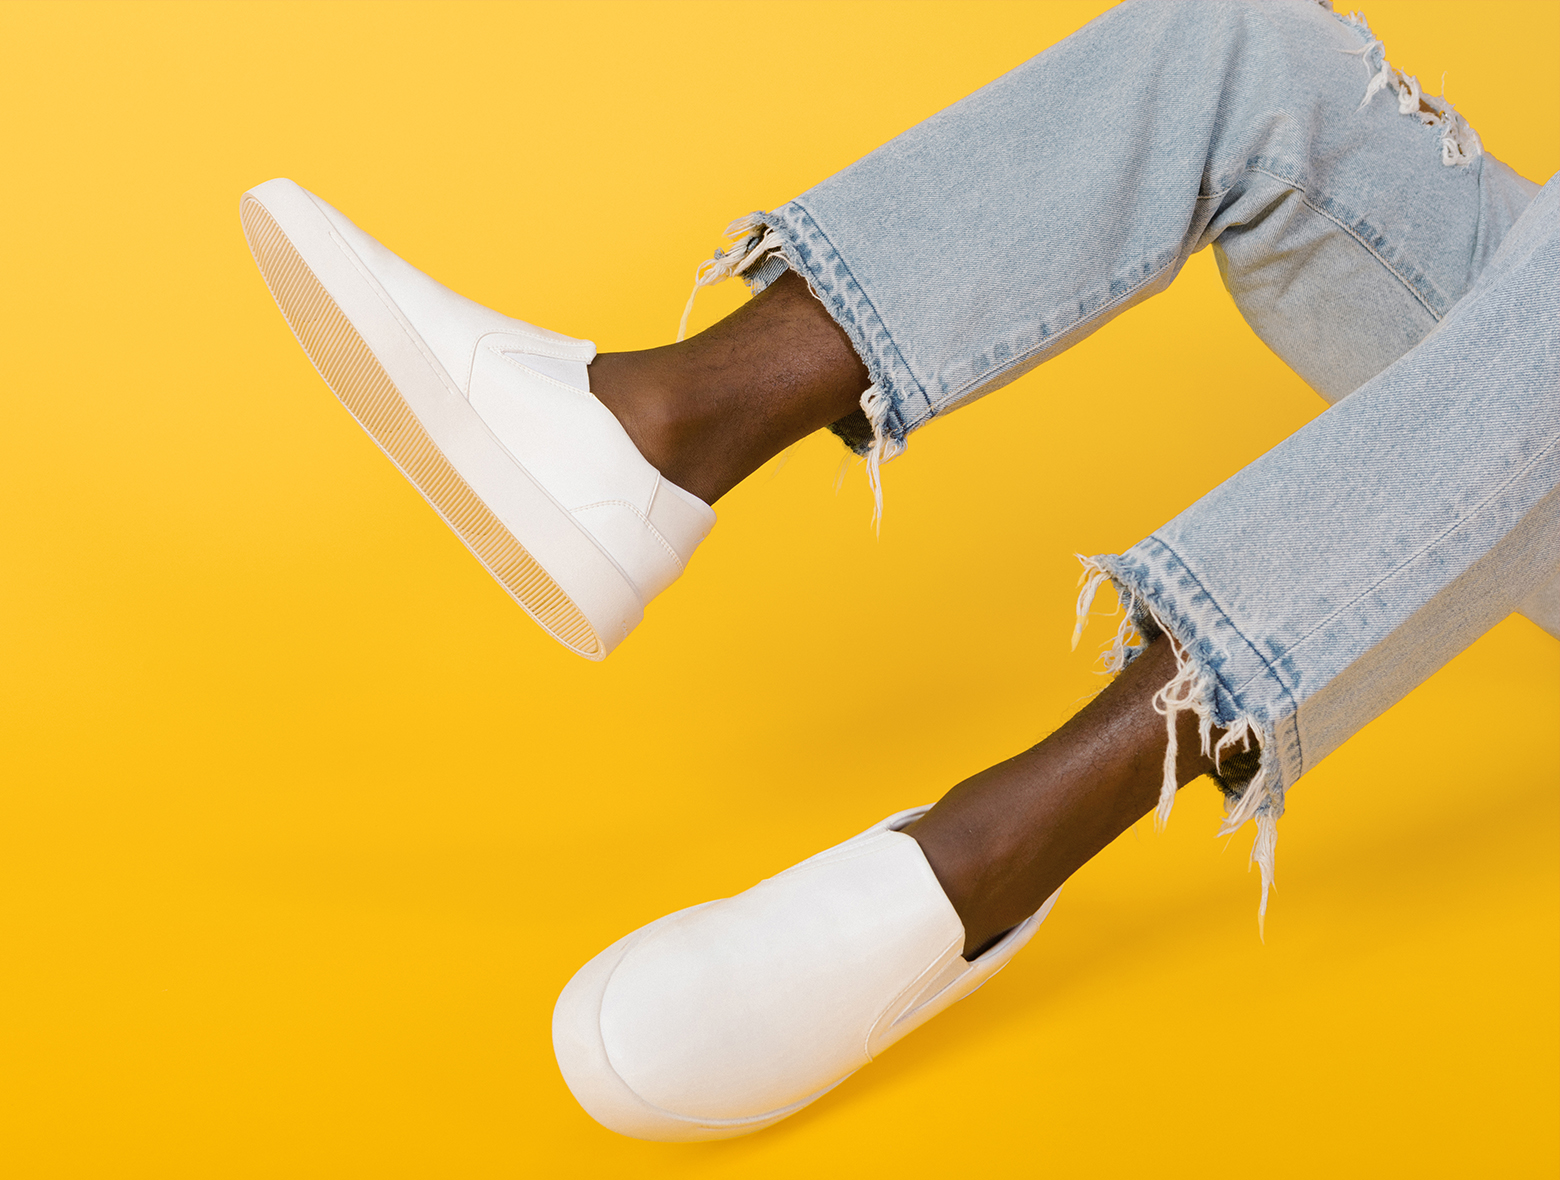 Crisp white sneakers on a bright yellow backdrop